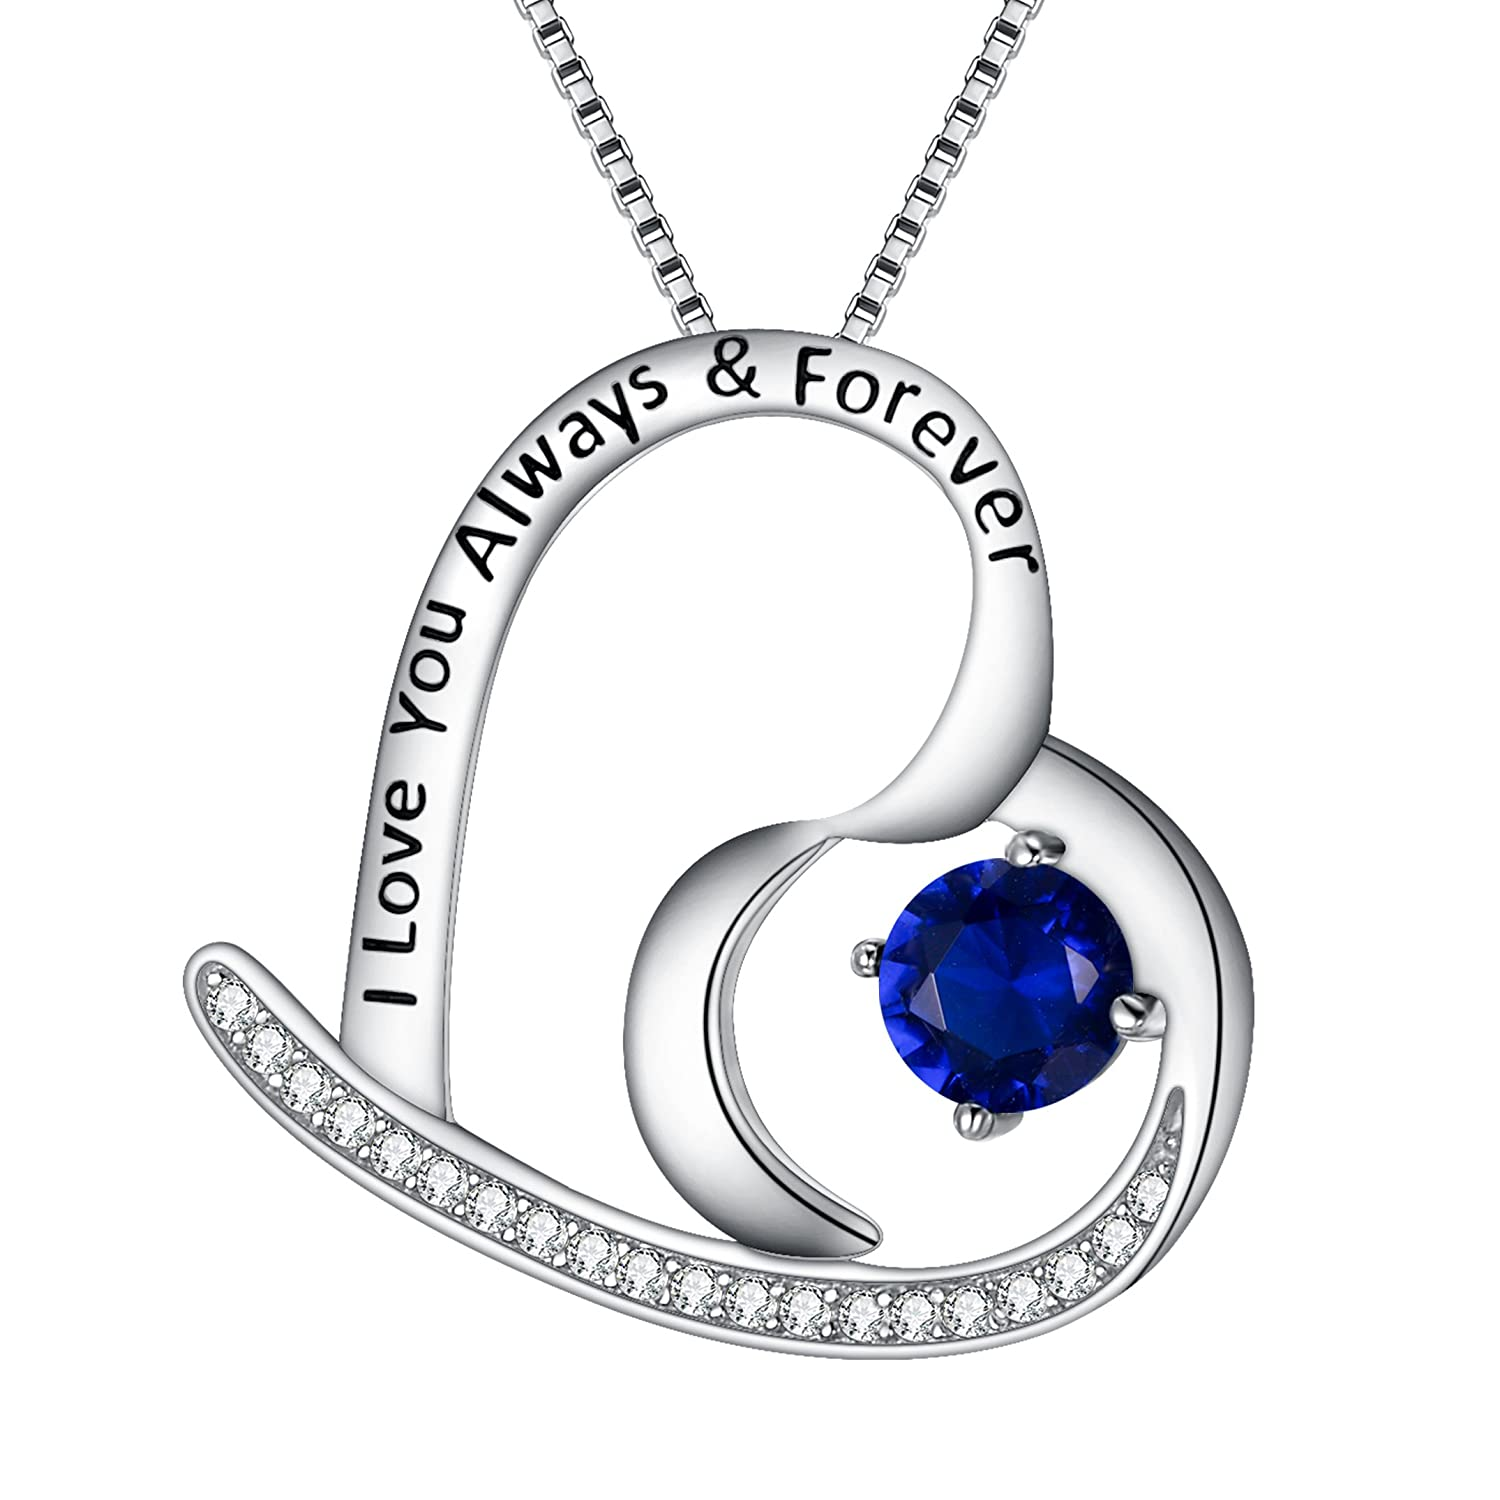 New 925 Sterling Silver Engravable Pendant Genuine Emerald Charm Necklace